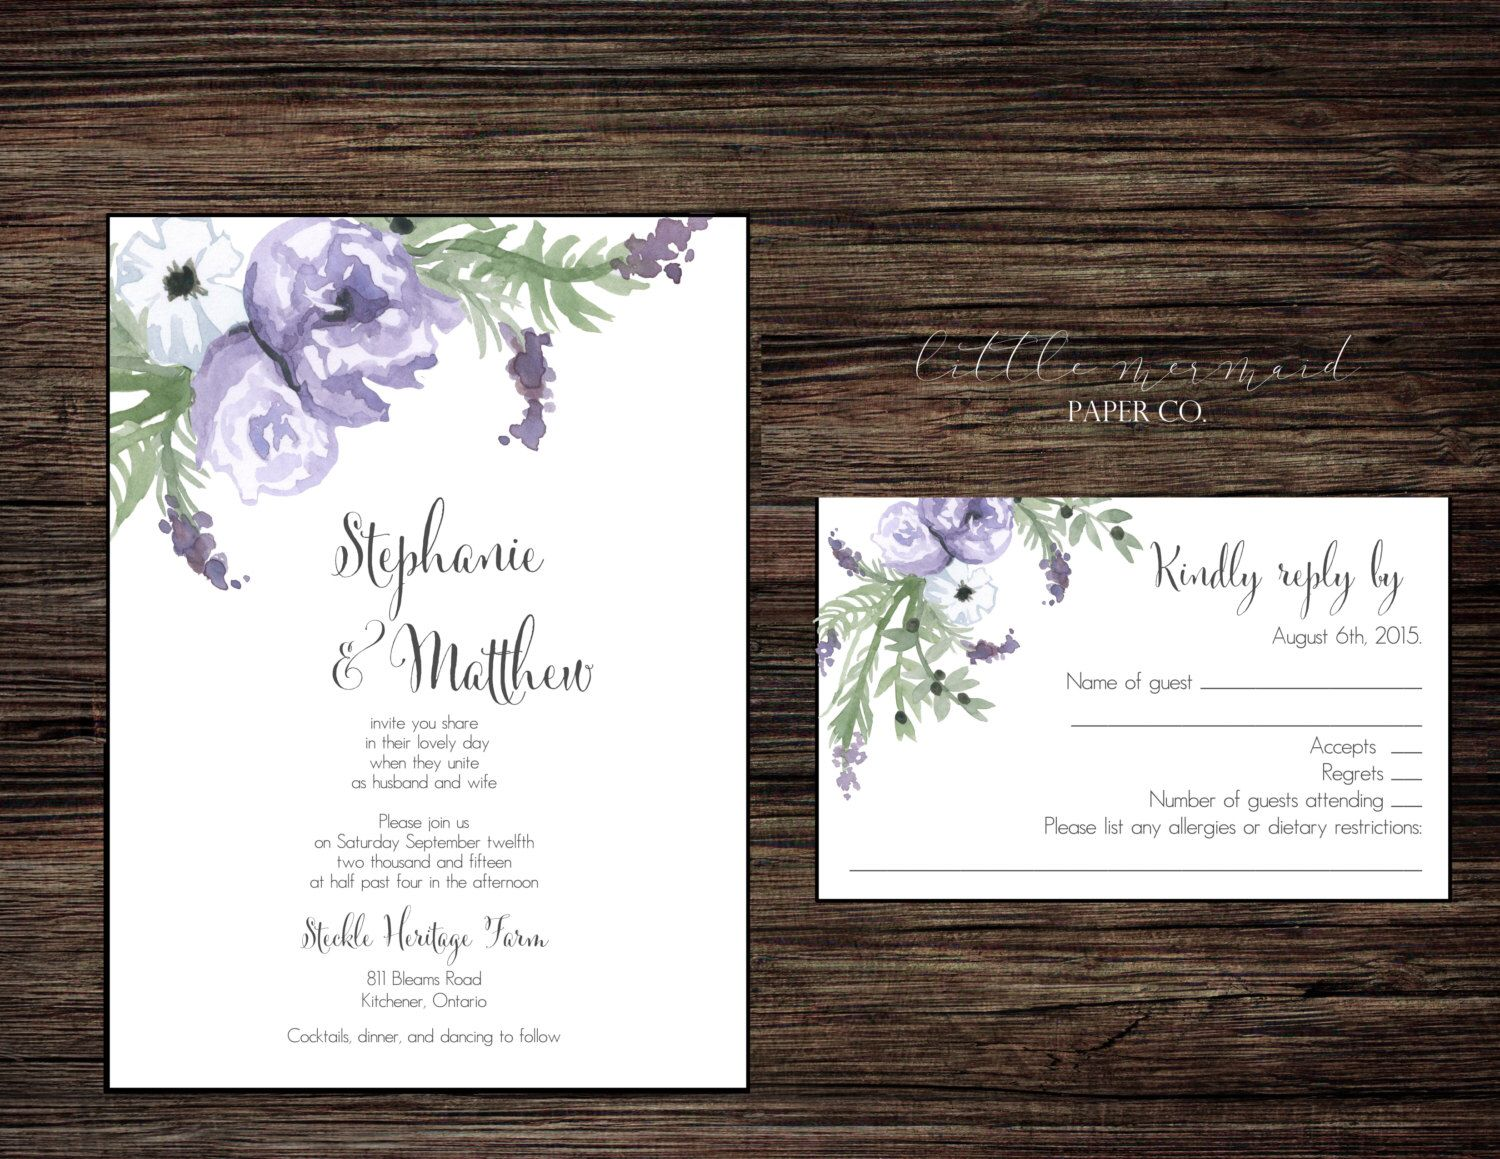 diy wedding invites rustic%0A PRINTABLE Modern Rustic purple watercolour floral DIY wedding invitation   Purple watercolour floral printable wedding invitation